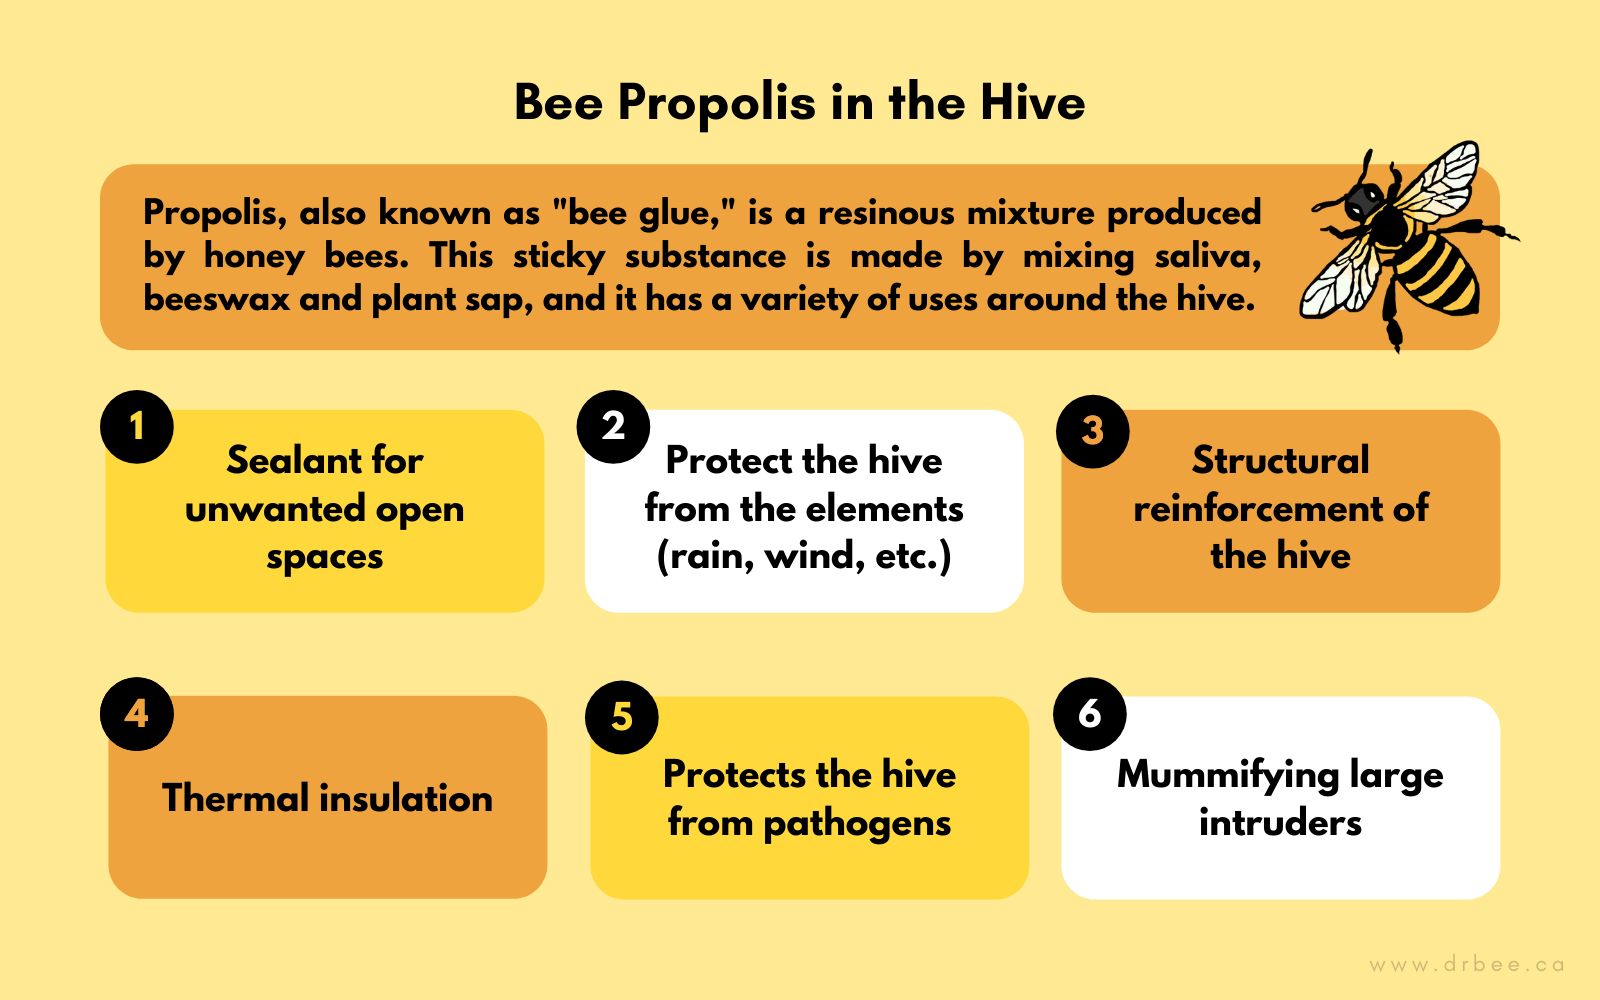 Bee Propolis Uses in the Hive